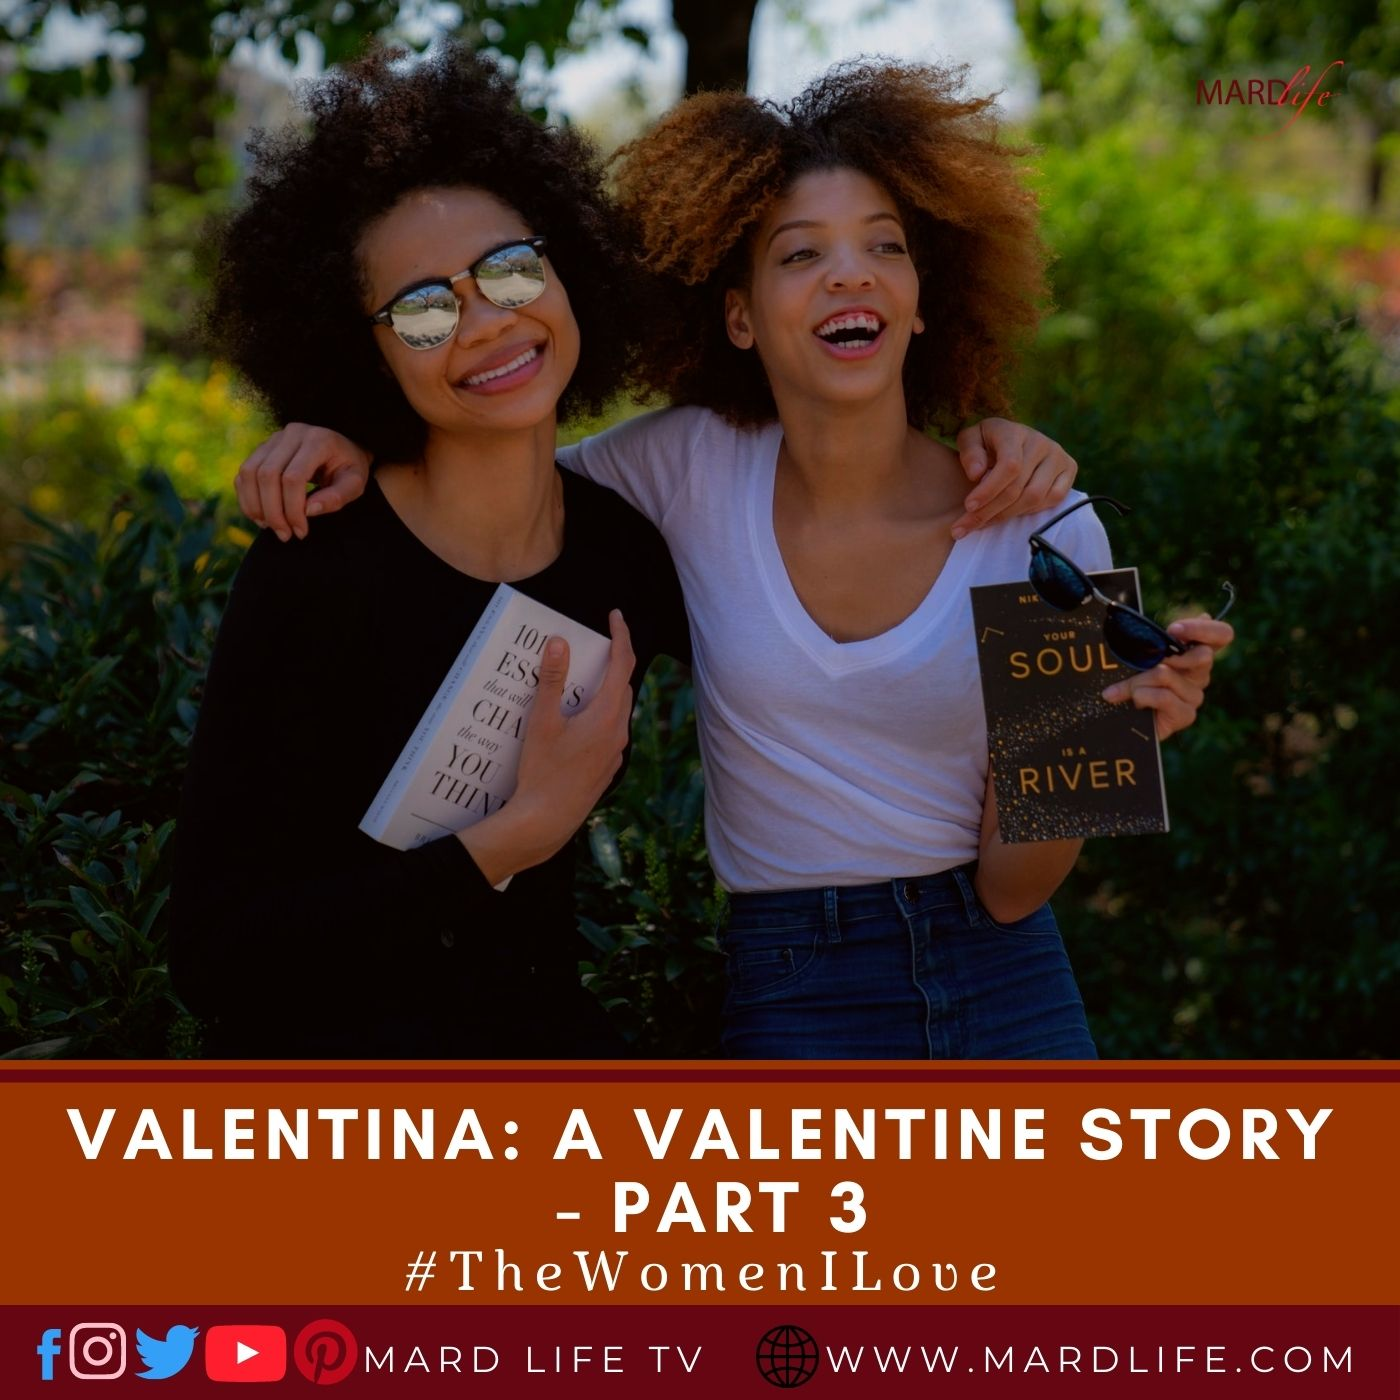 Valentina: A Valentine Story – Part 3 (The Women I Love)